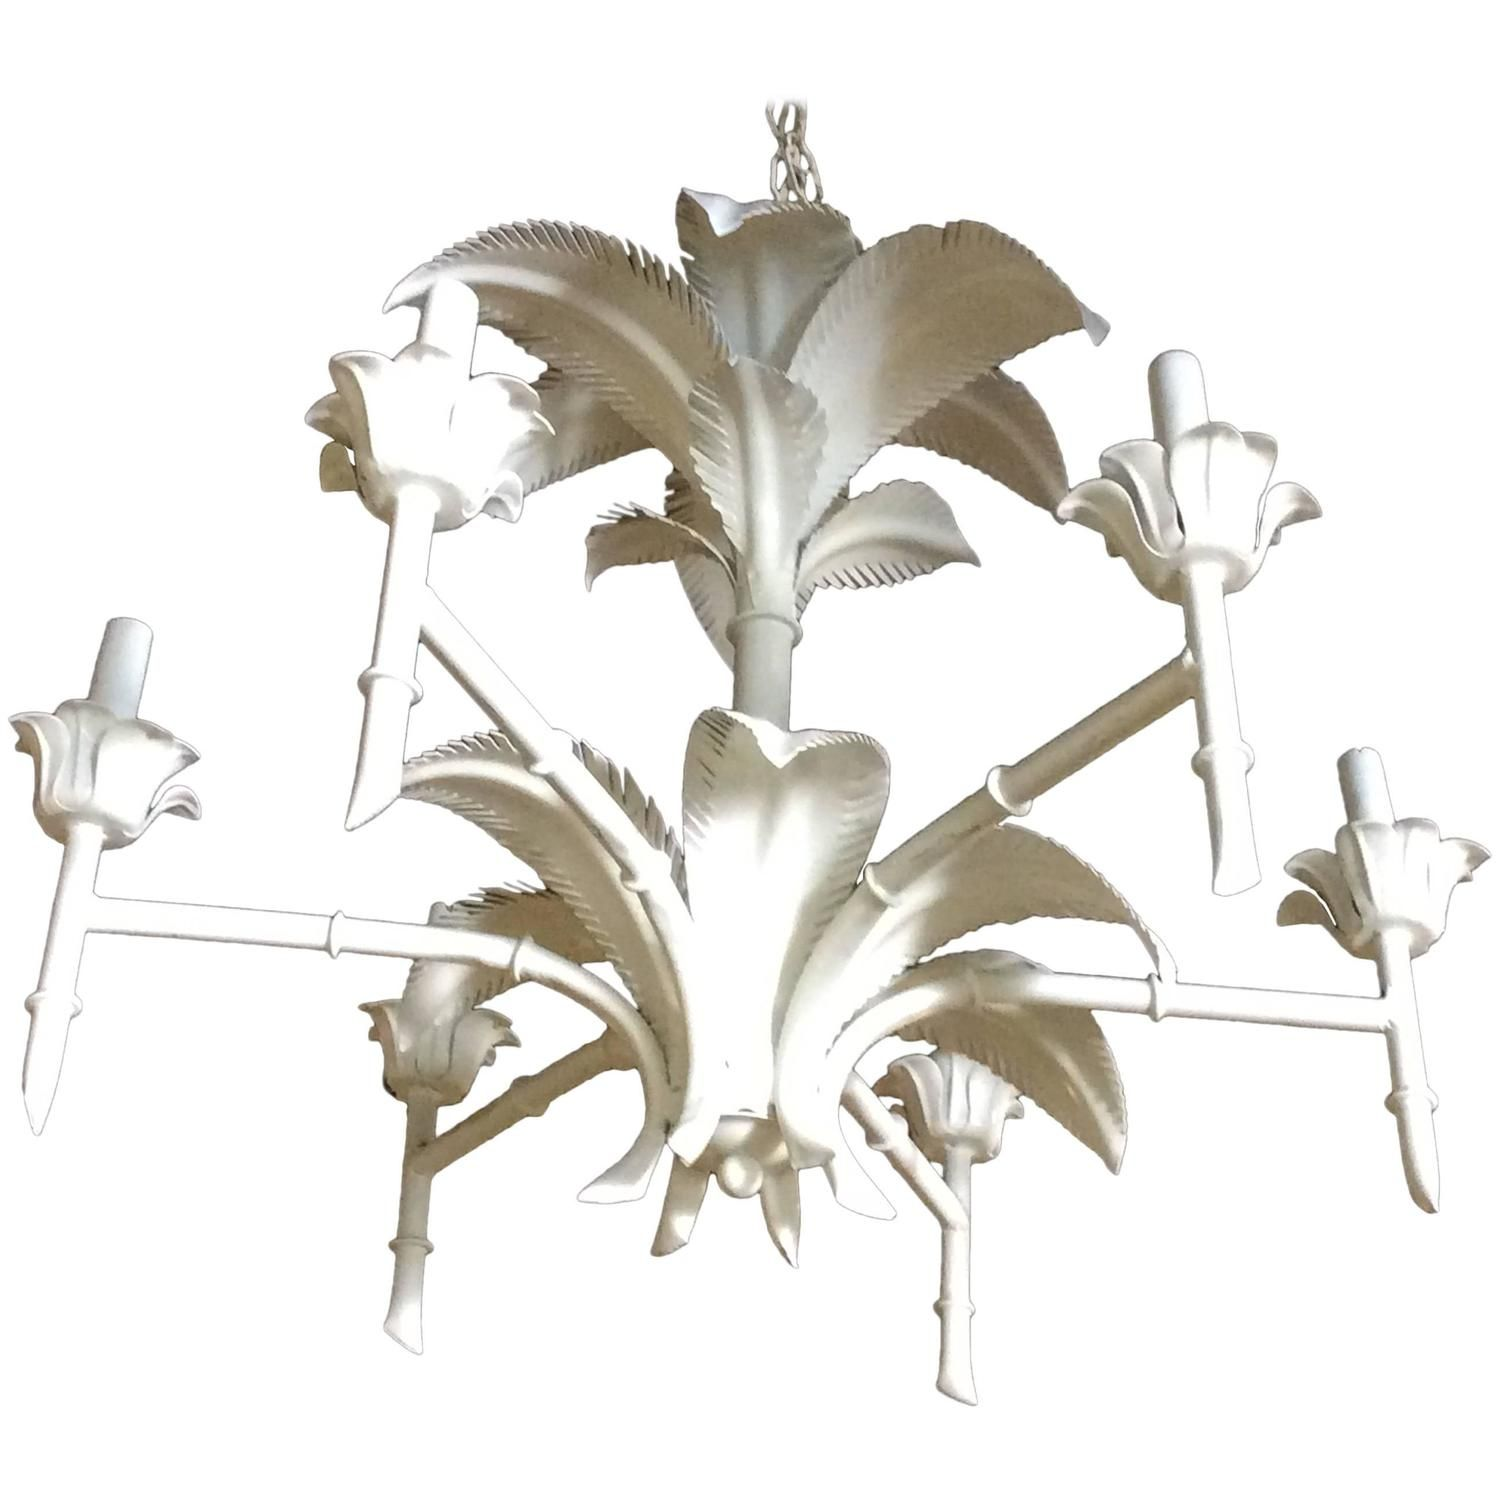 Palm tree frond leaf leaves metal faux bamboo chandelier palm beach palm tree frond leaf leaves metal faux bamboo chandelier palm beach tropical 1stdibs arubaitofo Images